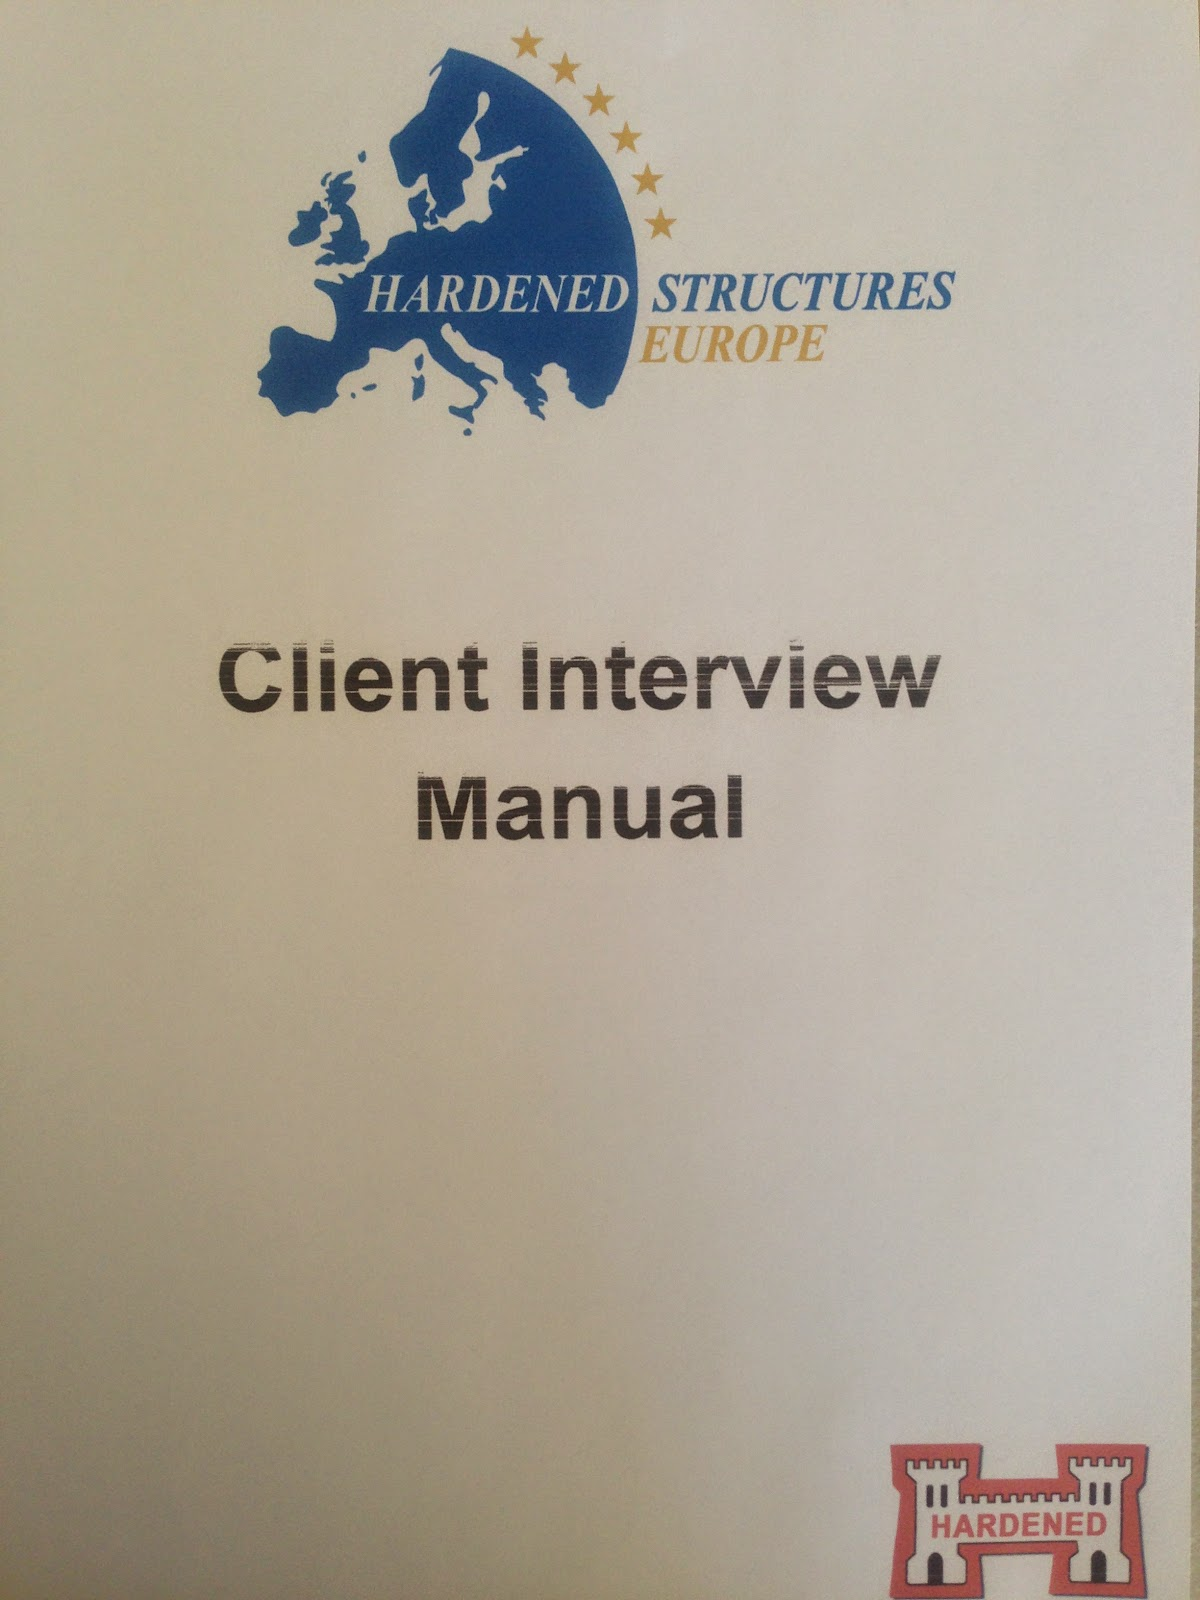 Construction Program Management & Client Interview Manuals Image